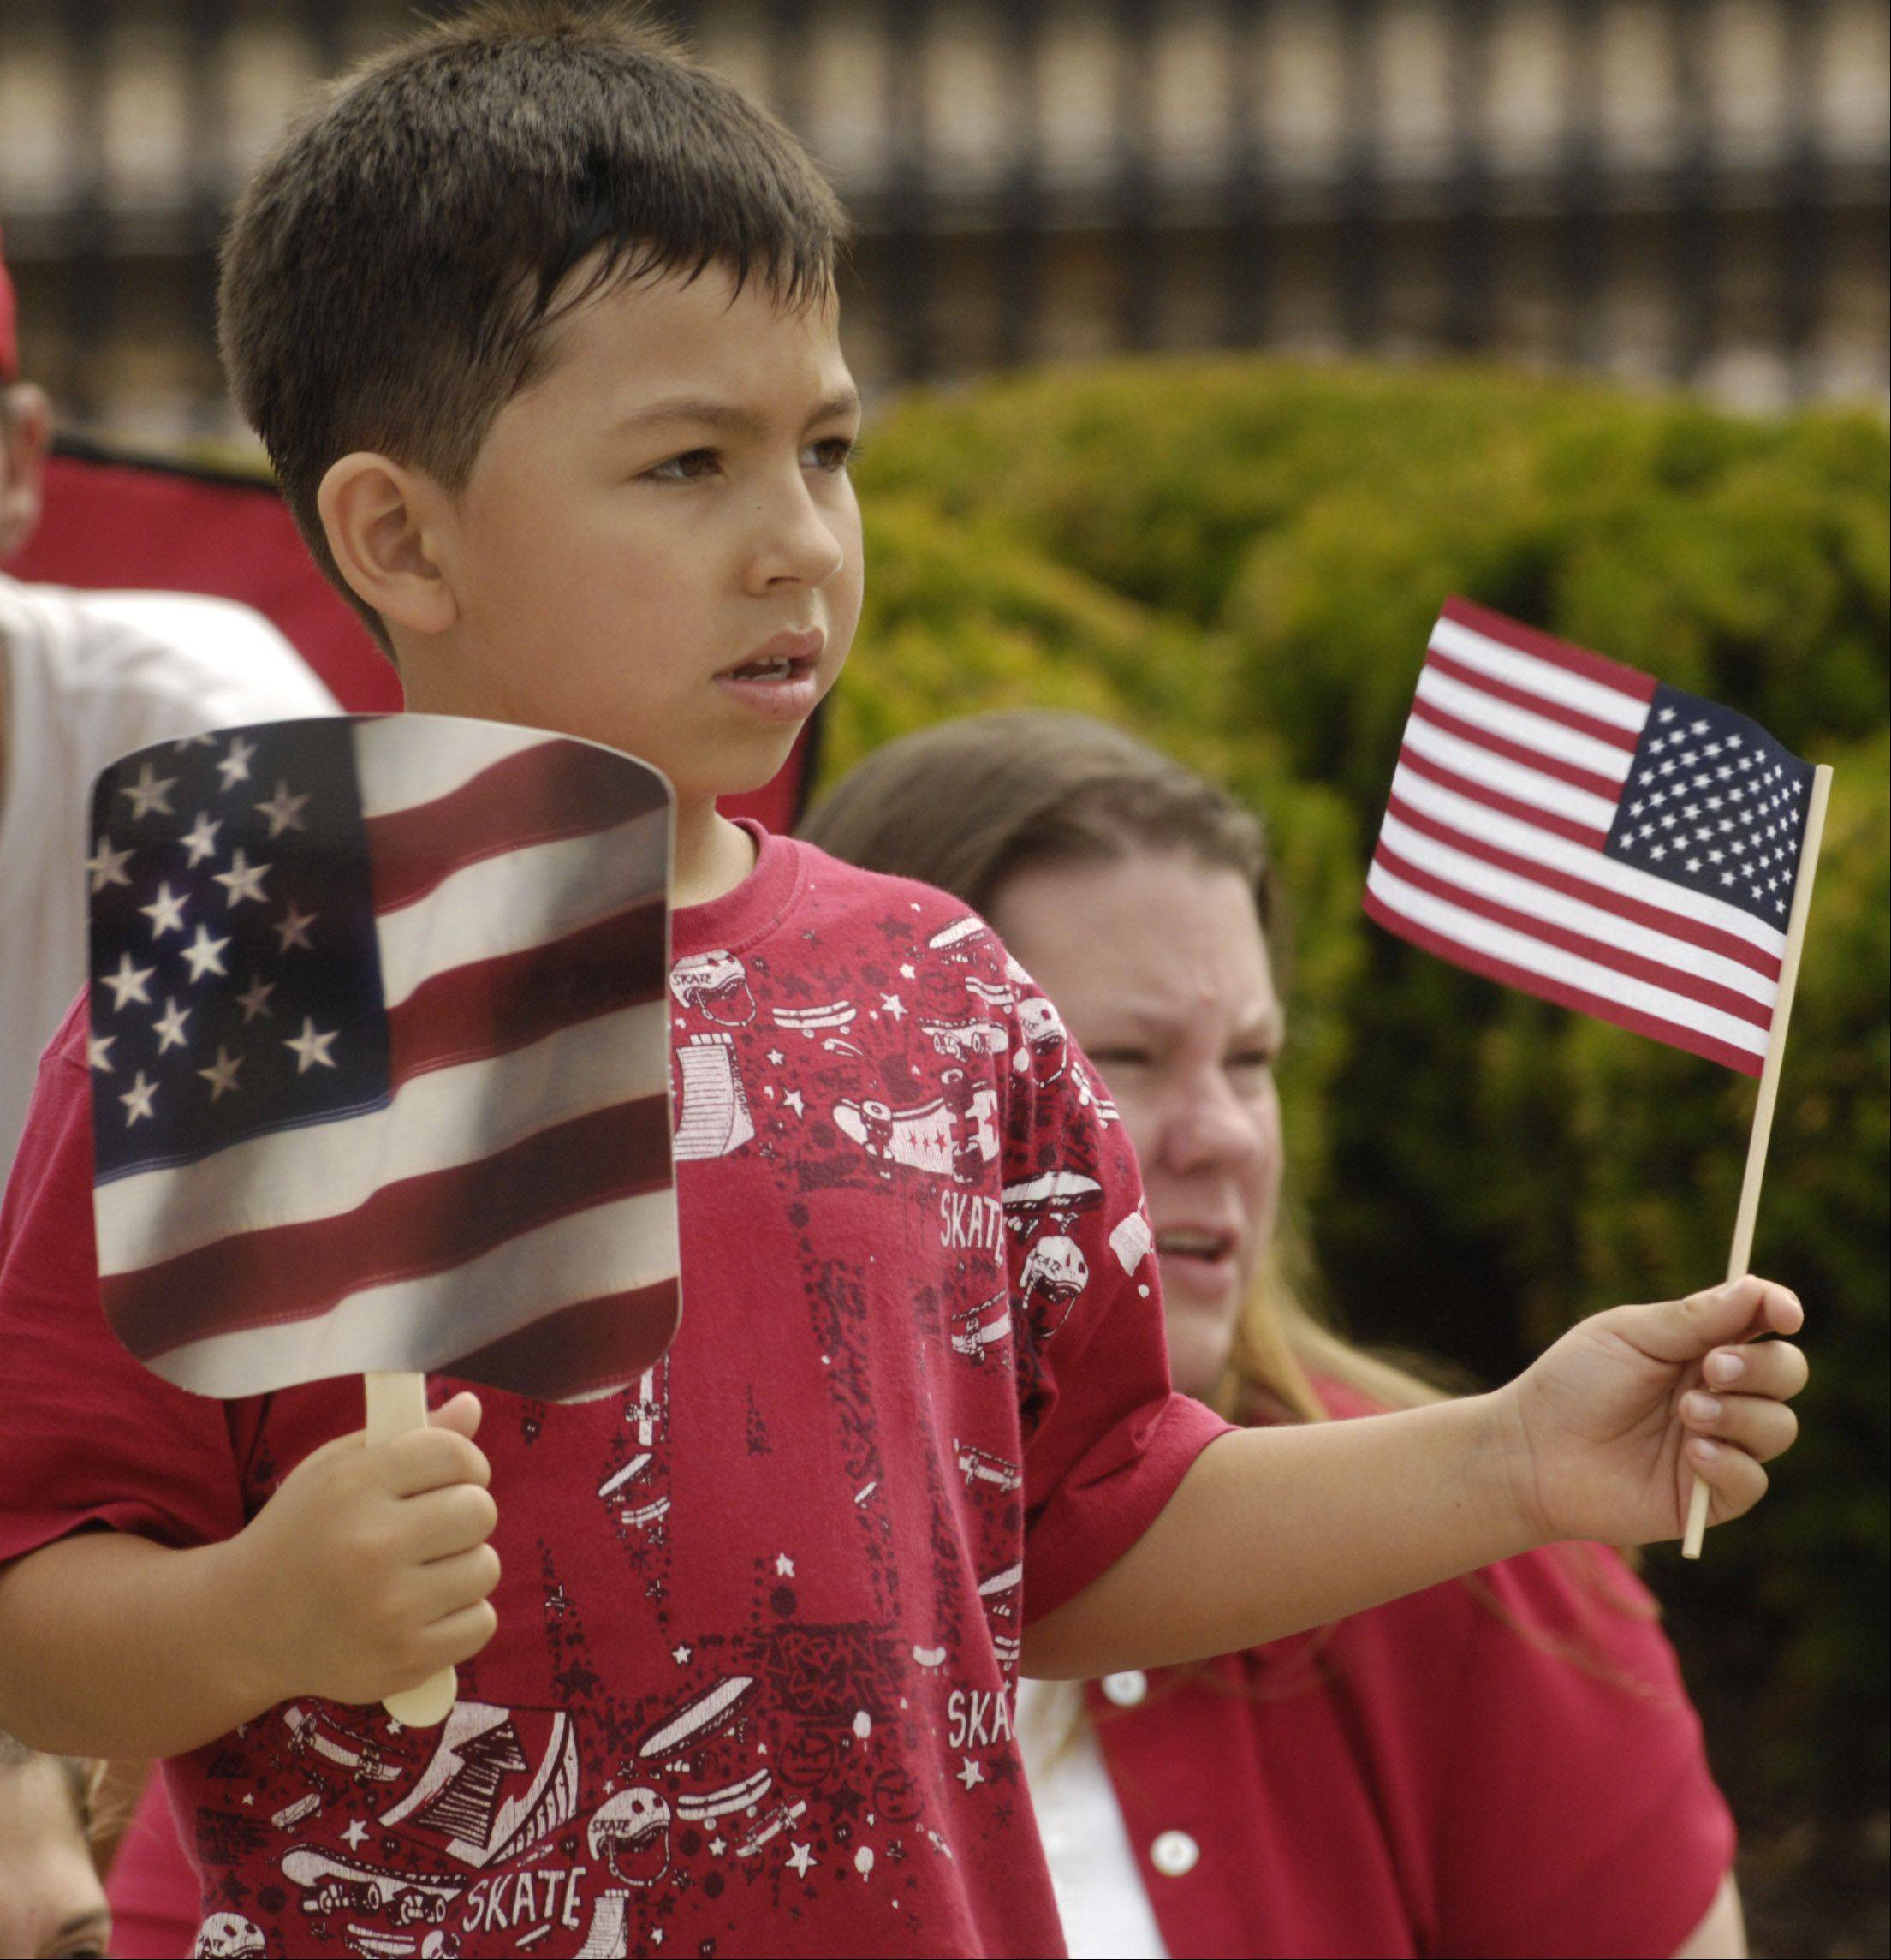 J.J. Islas, 6, of Palatine, cools himself with a fan held in one and hand and waves a flag with the other hand during the Palatine Hometown Parade Saturday.